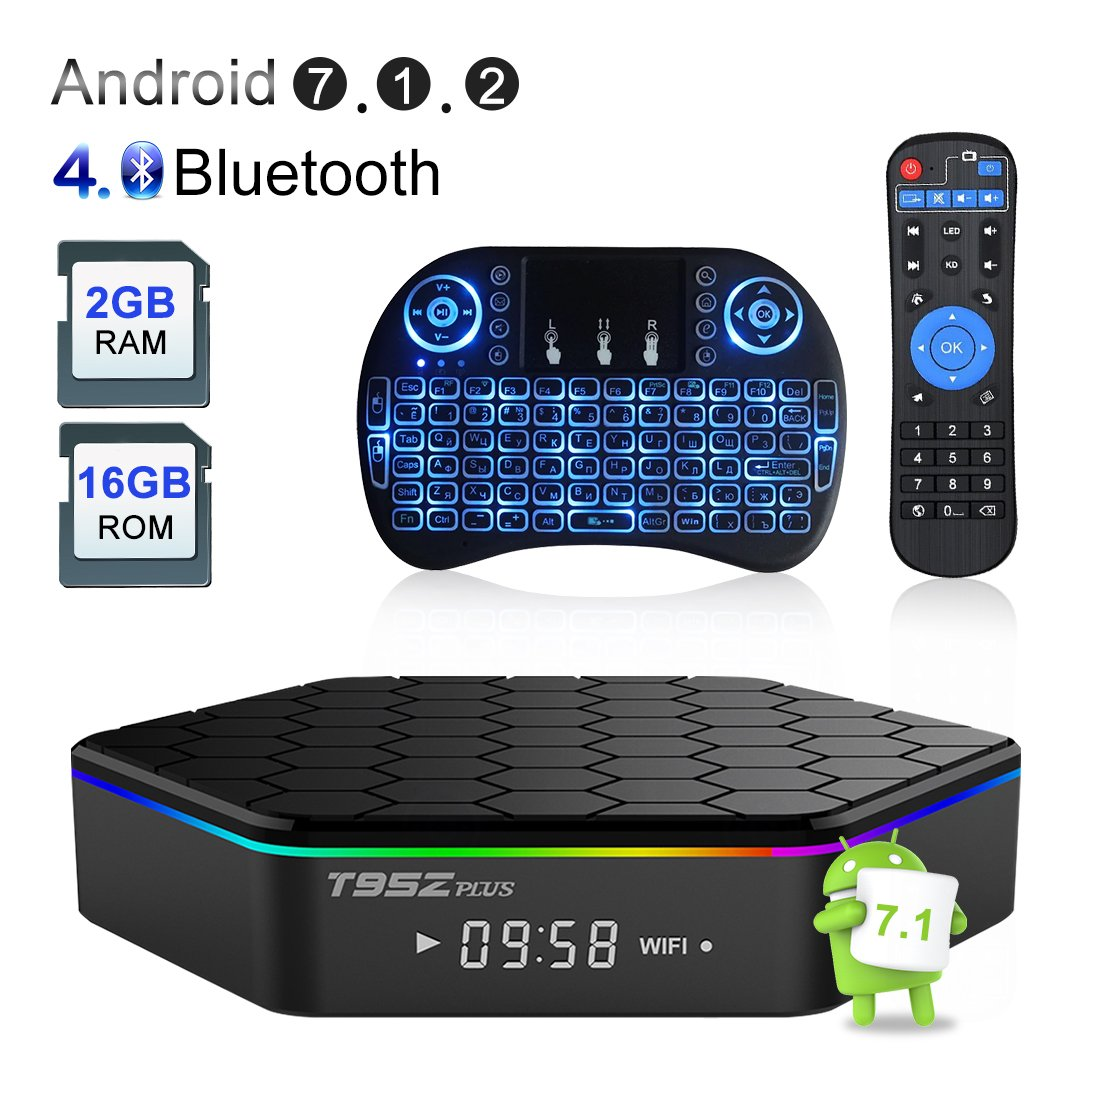 IVSUN T95Z PLUS Android 7.1 TV BOX, Amlogic S912 Octa Core 2GB RAM 16GB ROM Support Dual WiFi 2.4G/5GHz 1000M LAN BT 4.0 UHD 4K 3D Smart TV Boxes with Mini Wireless Keyboard (BACKLIT)